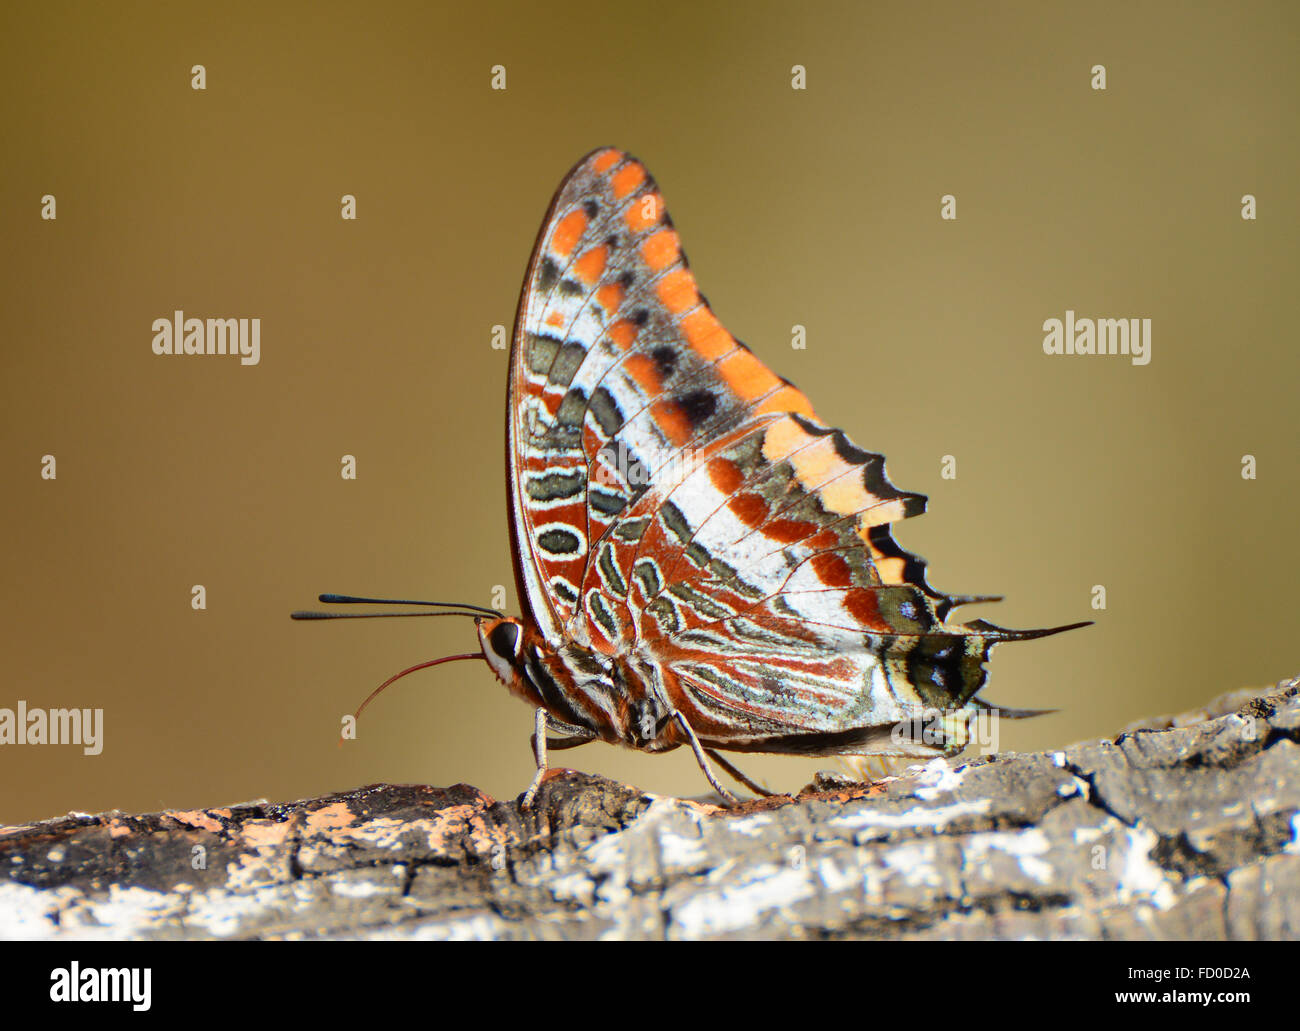 Charaxes jasius, Foxy Emperor butterfly - Stock Image